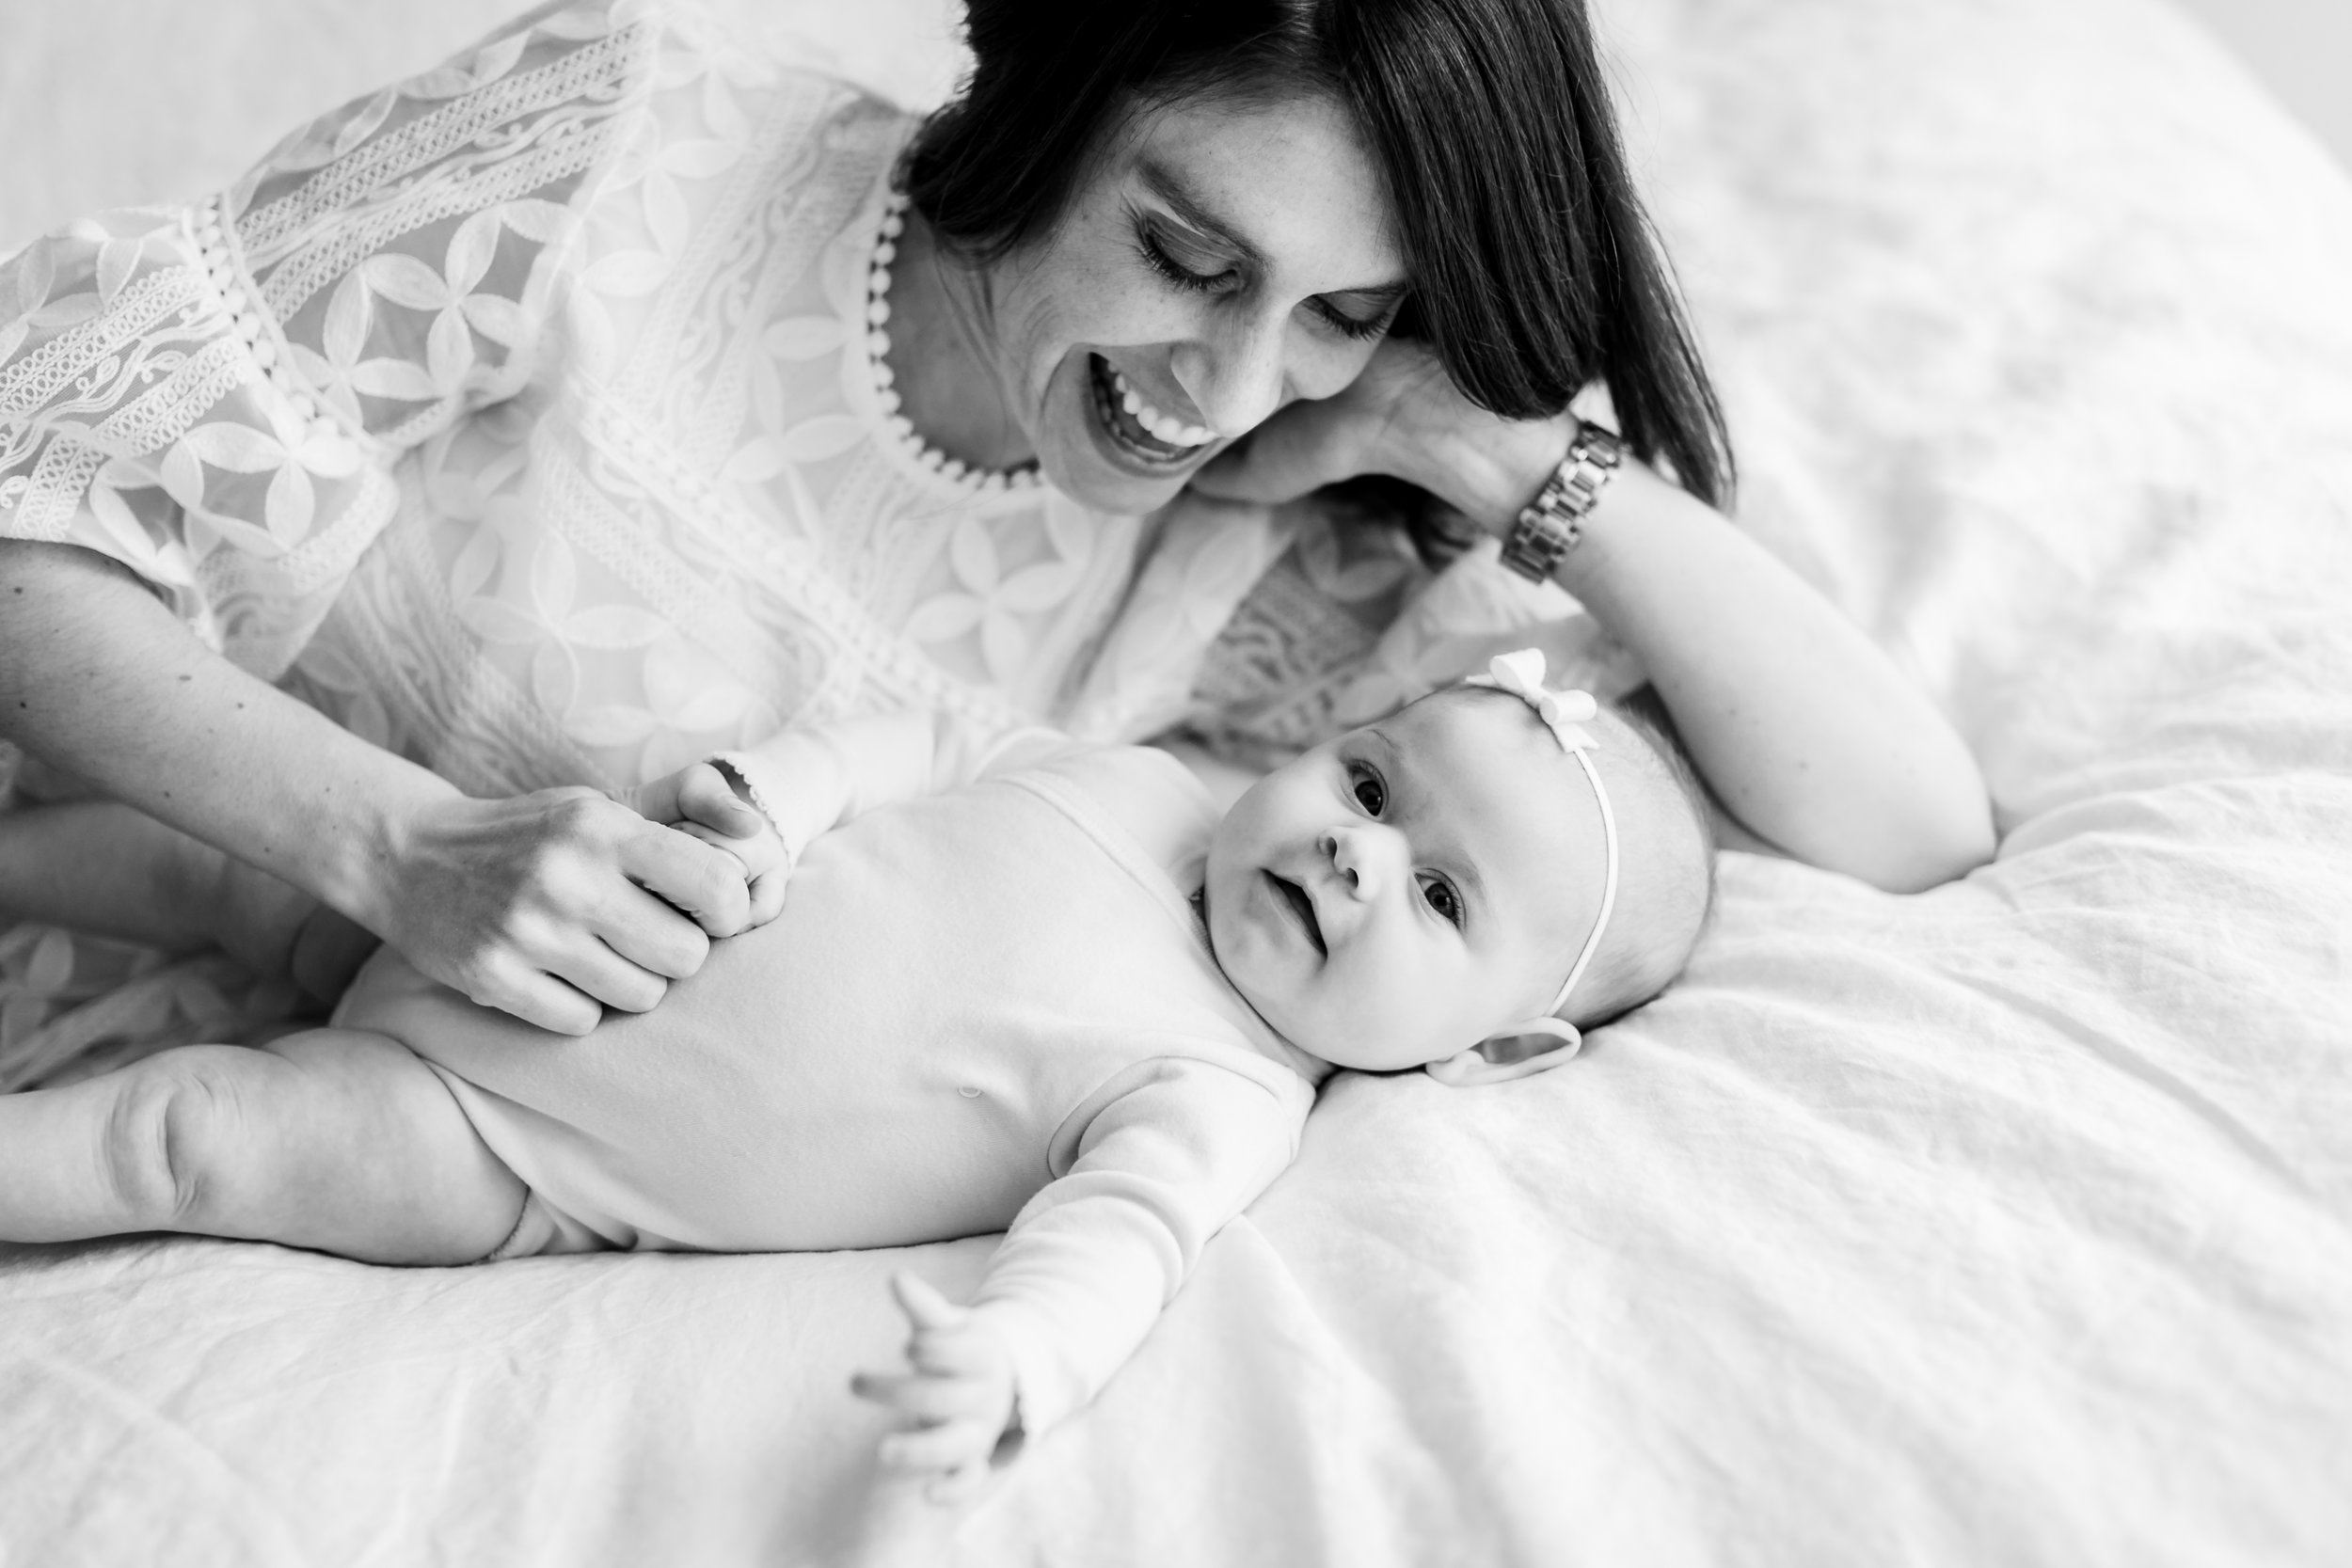 chicago studio lifestyle mommy me bw candid portrait jenny grimm baby photography